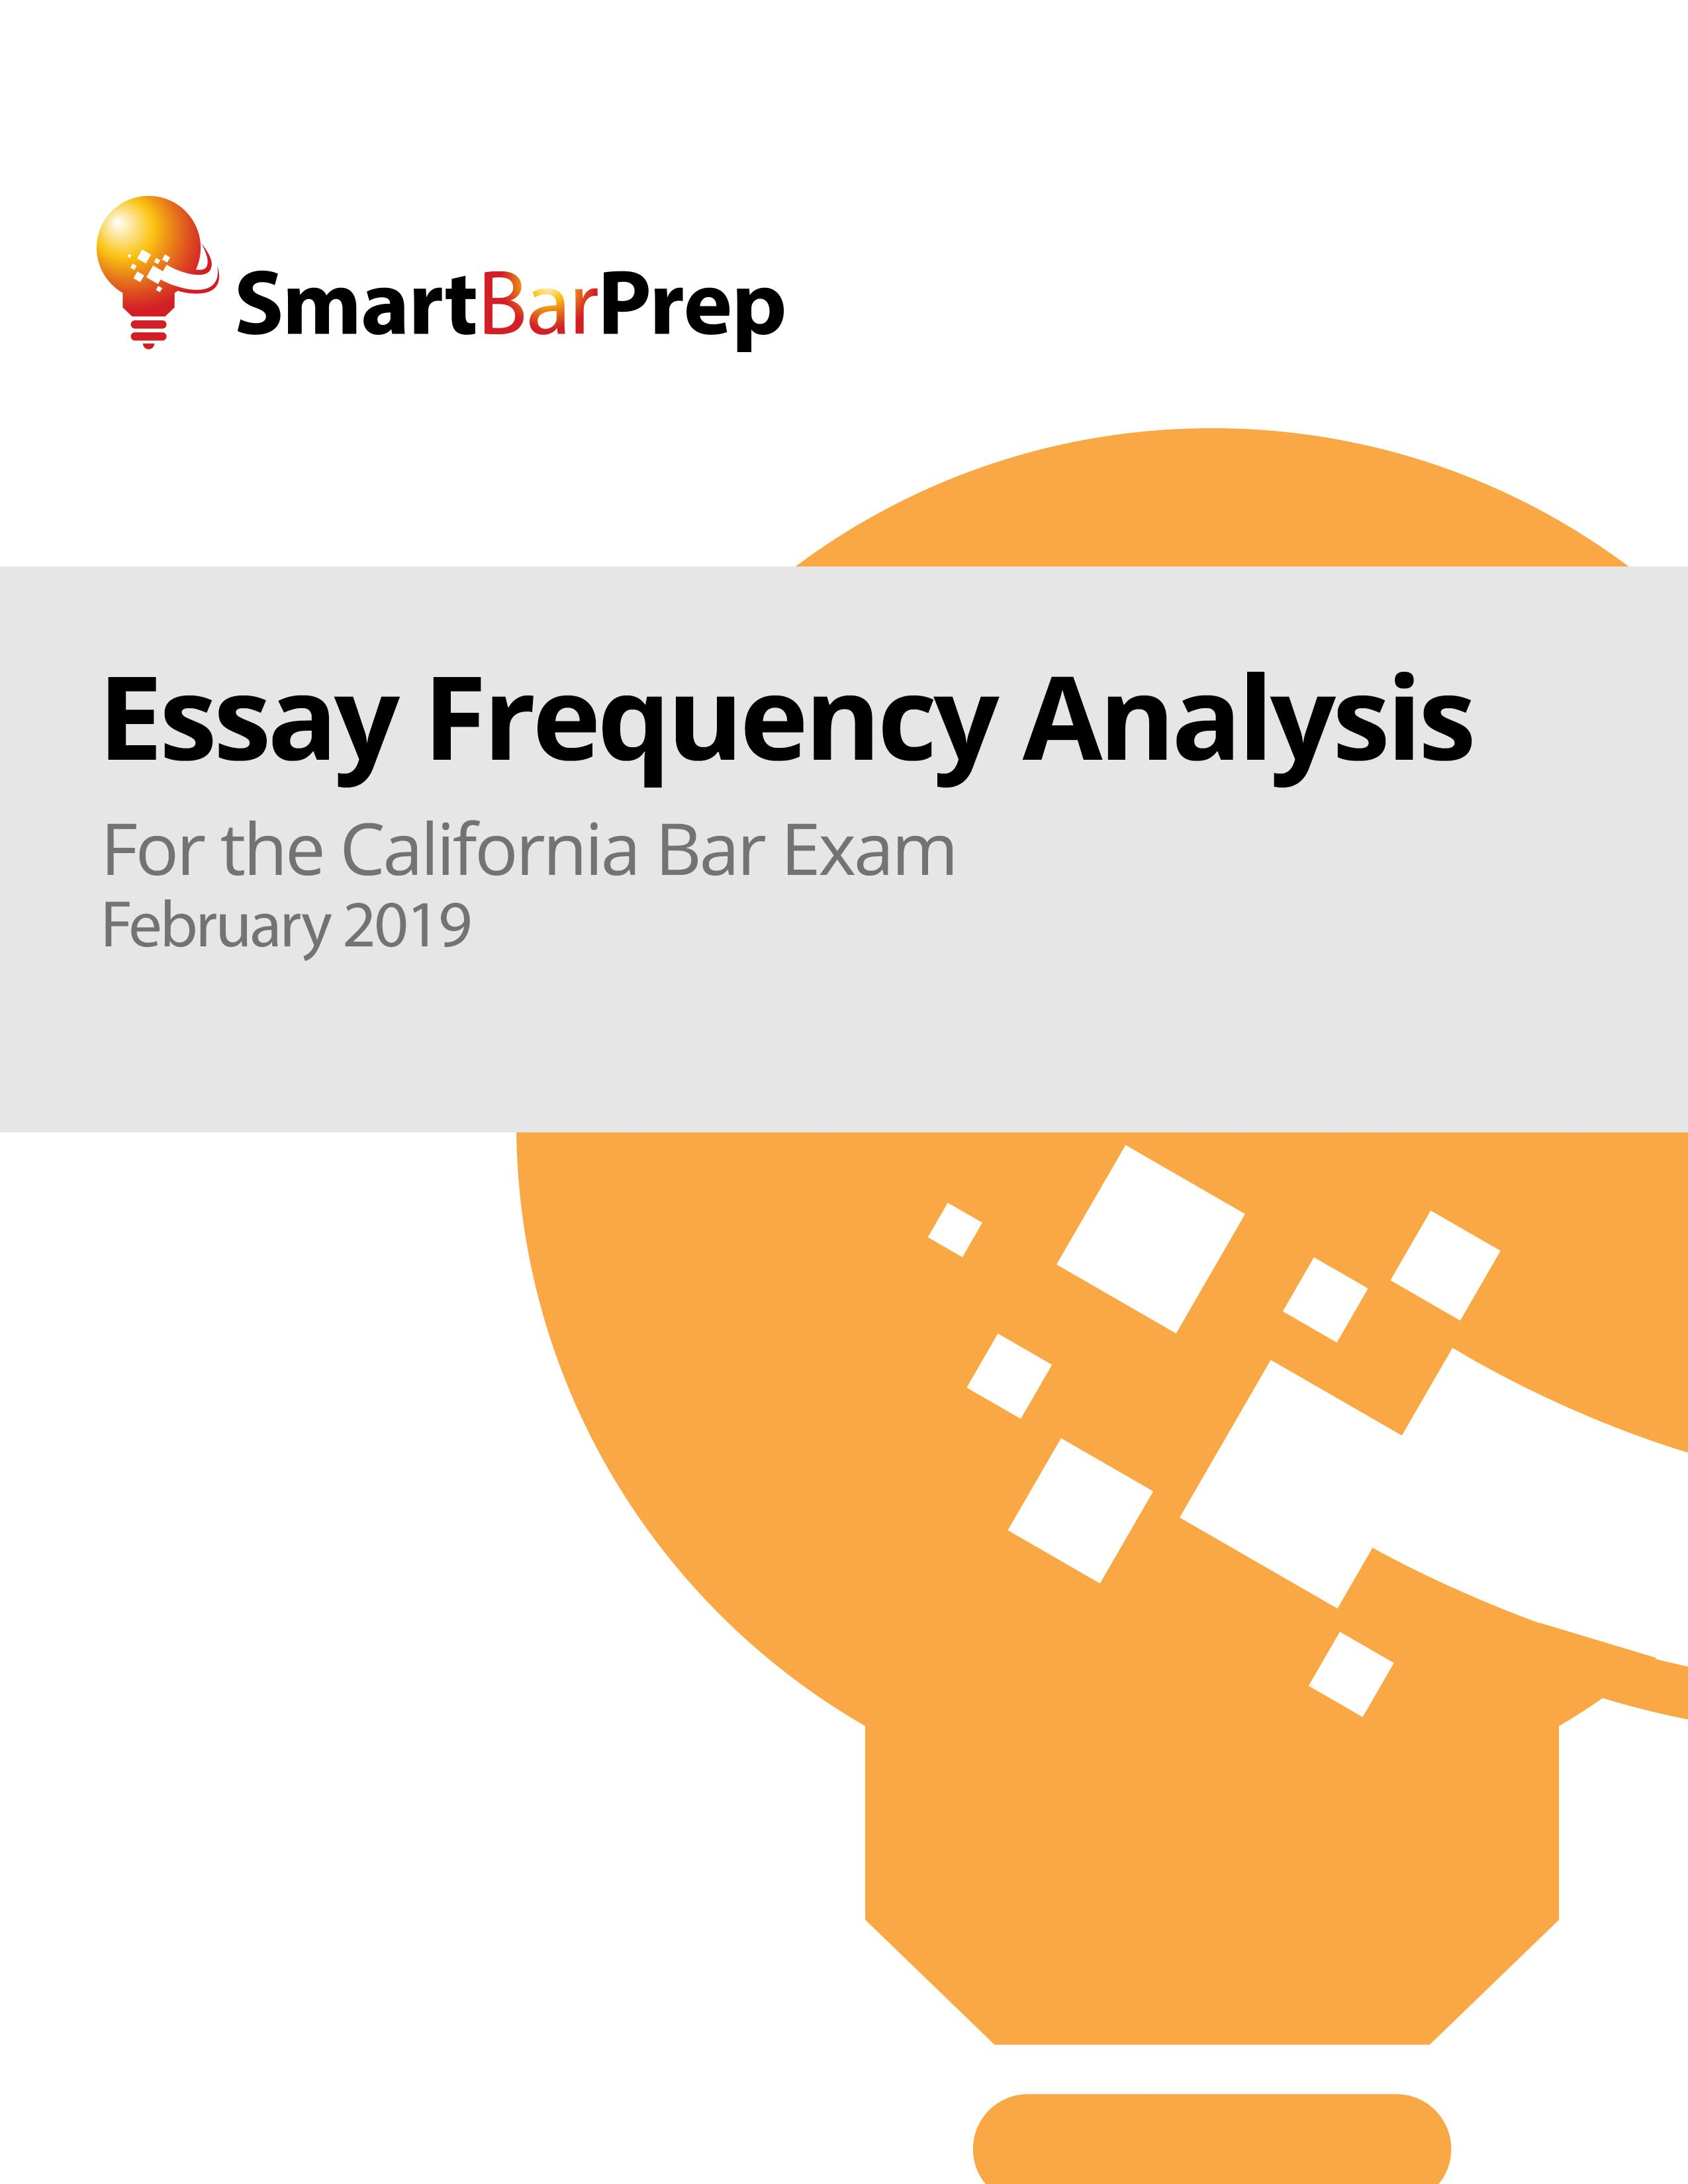 Essay Of Advertisement How Likely Is Civil Procedu To Appear On Your Bar Exam Essays Hindi Essays For Children also What Is College For Essay California Essay Frequency Analysis  Smartbarprepcom Commentary Examples In Essays